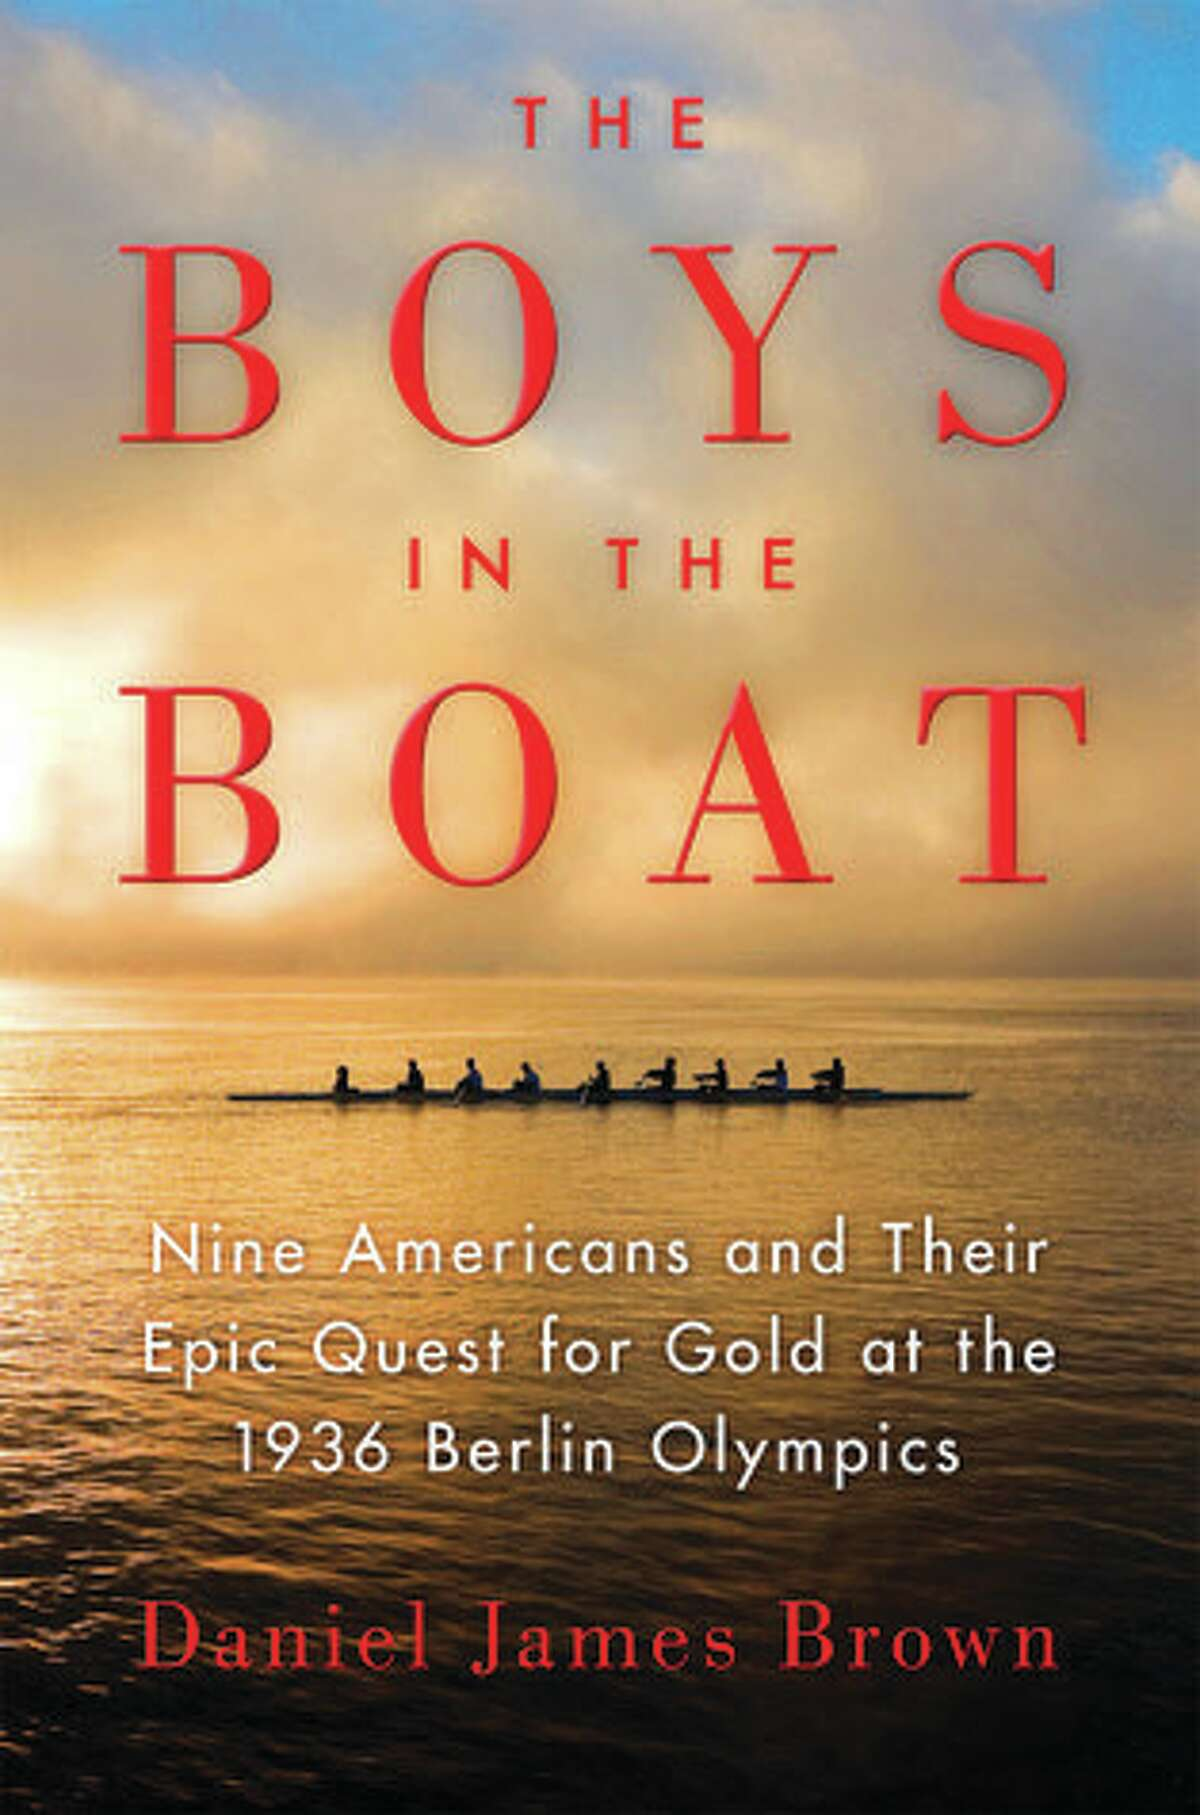 THE BOYS IN THE BOAT, by Daniel James Brown.